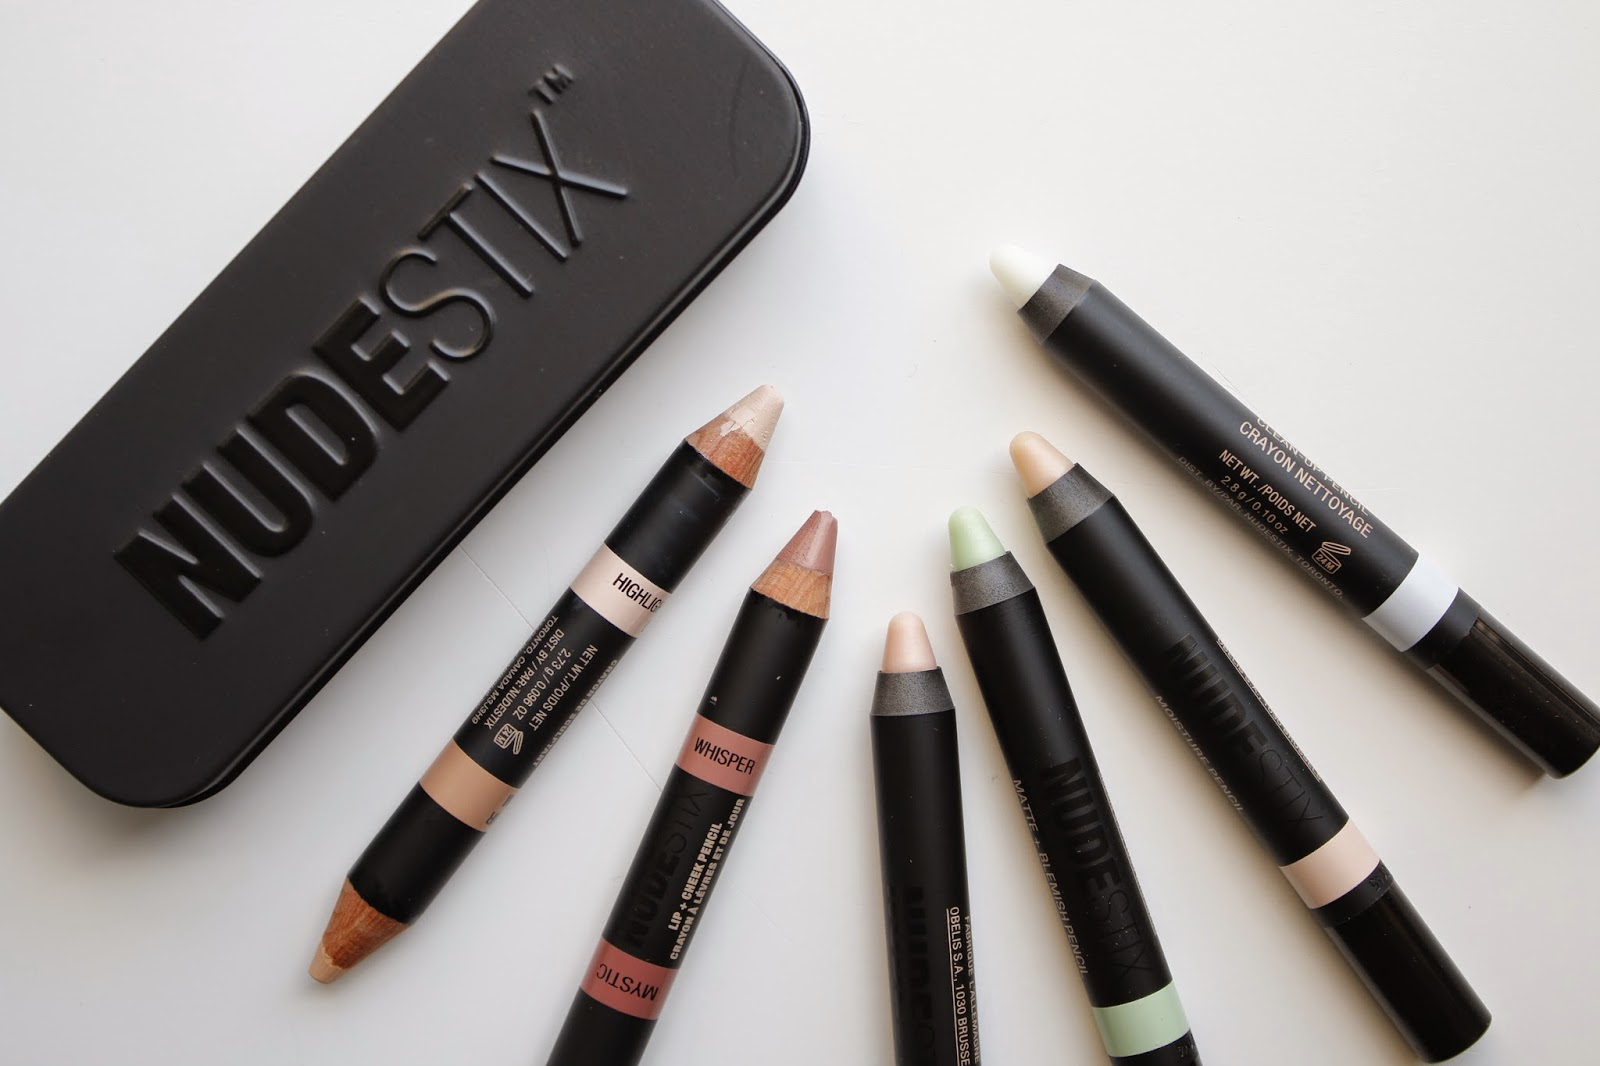 New launches from Nudestix